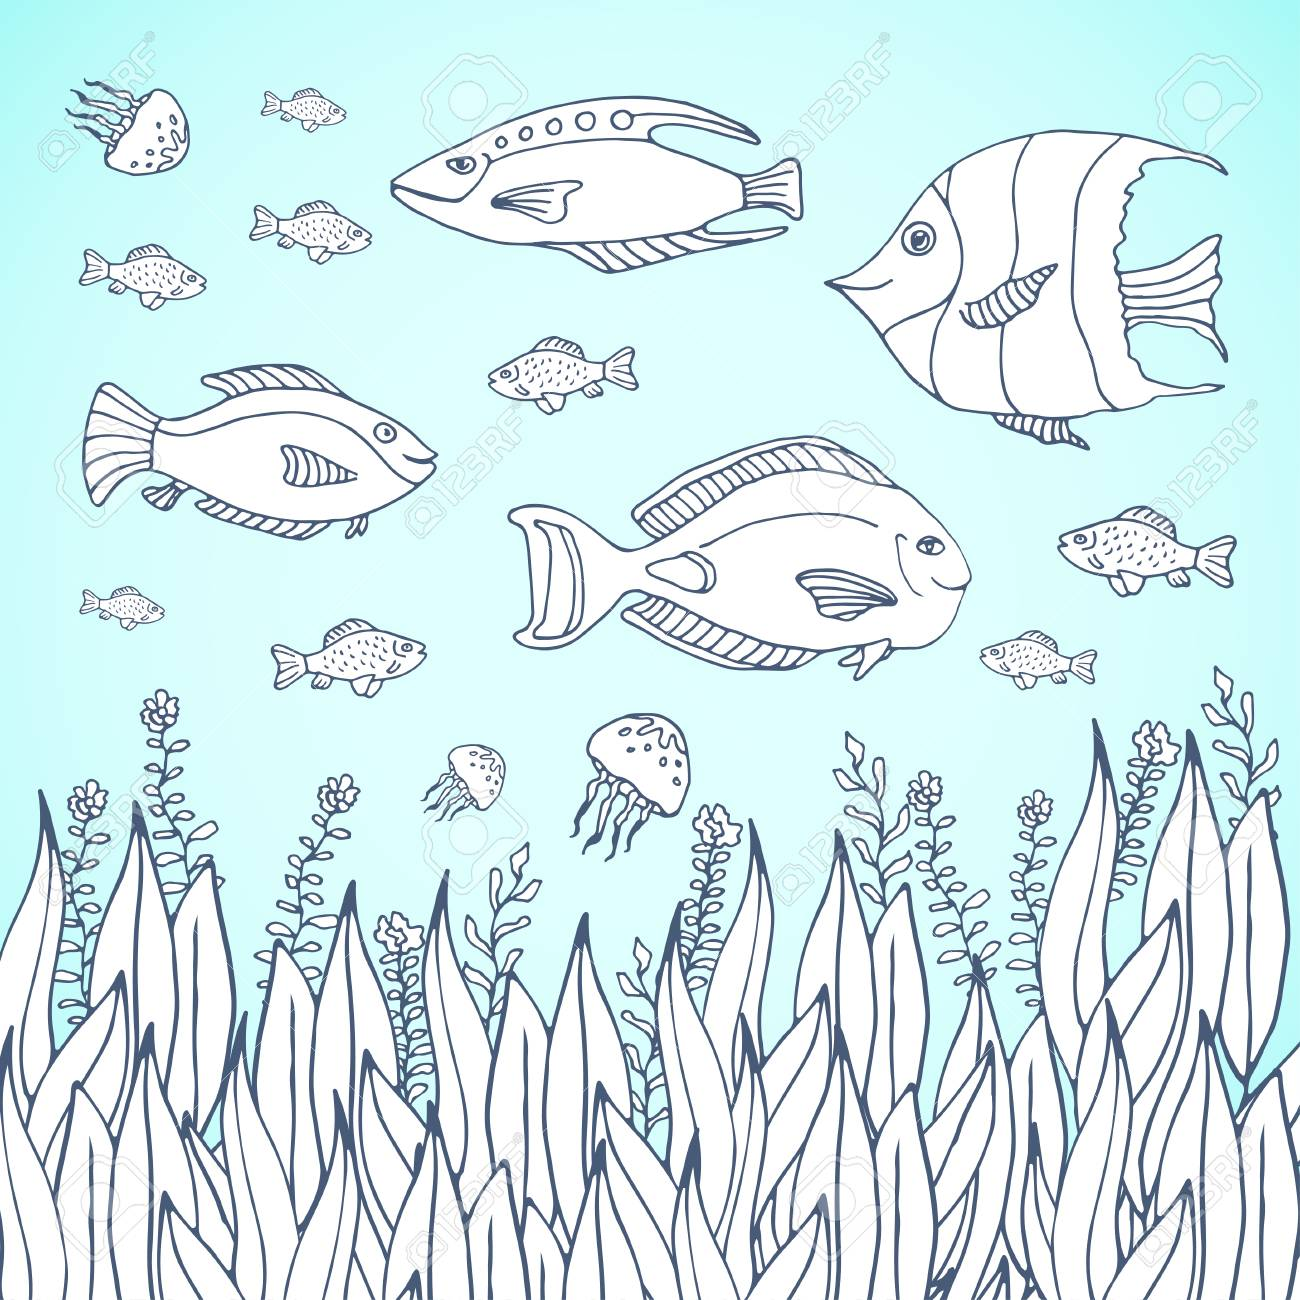 Adult Coloring Book Page. Kids Coloring Page With Aquarium Fishes ...